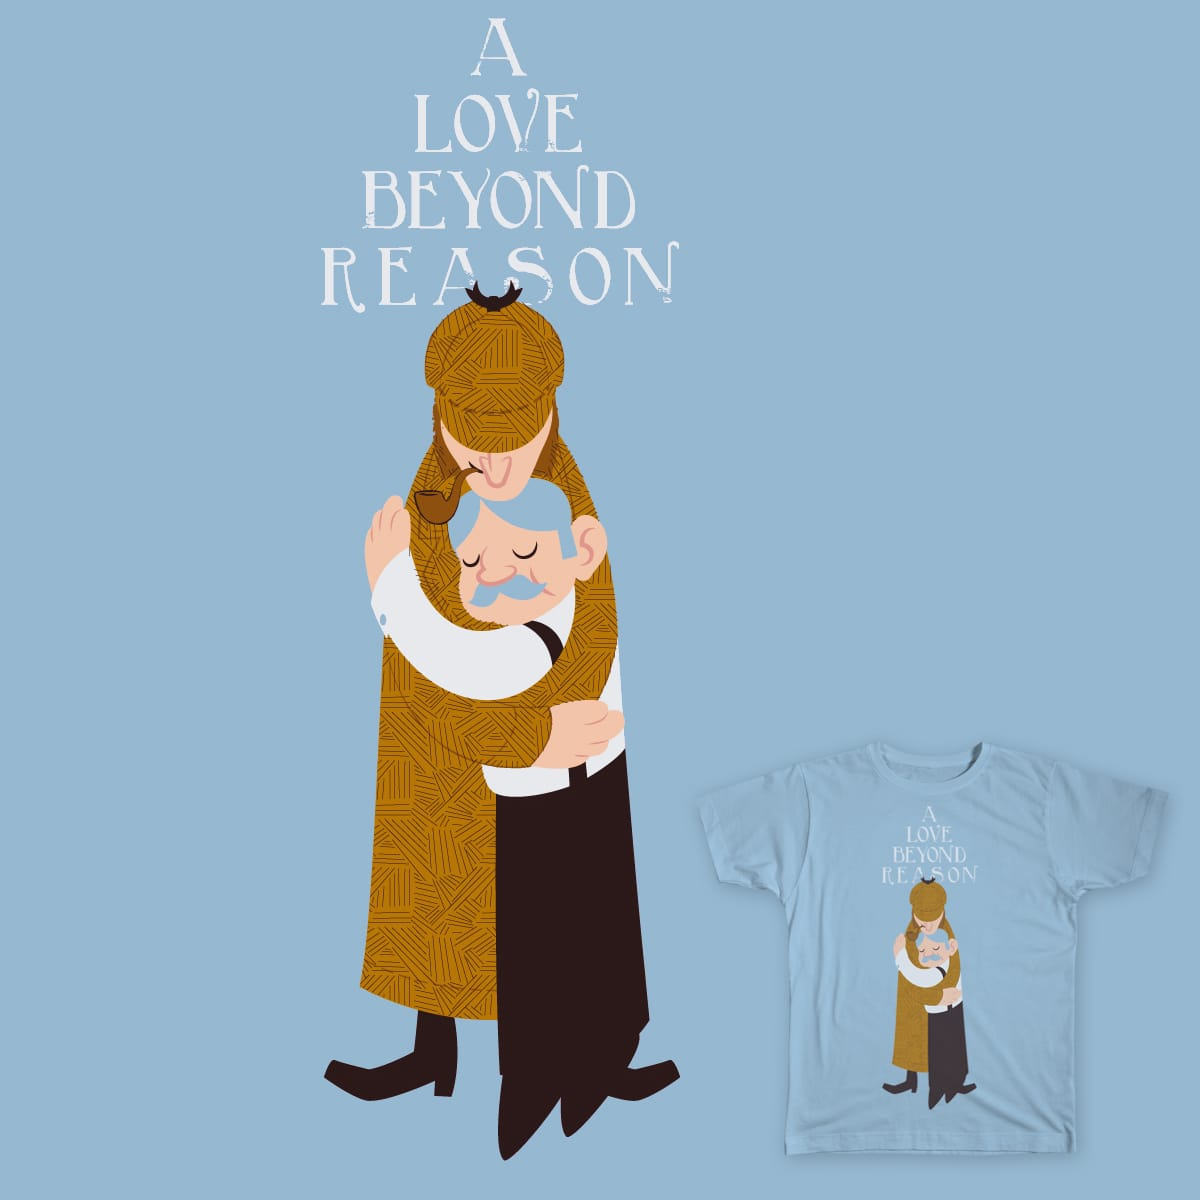 A Love Beyond Reason by ProfessorBrandon on Threadless